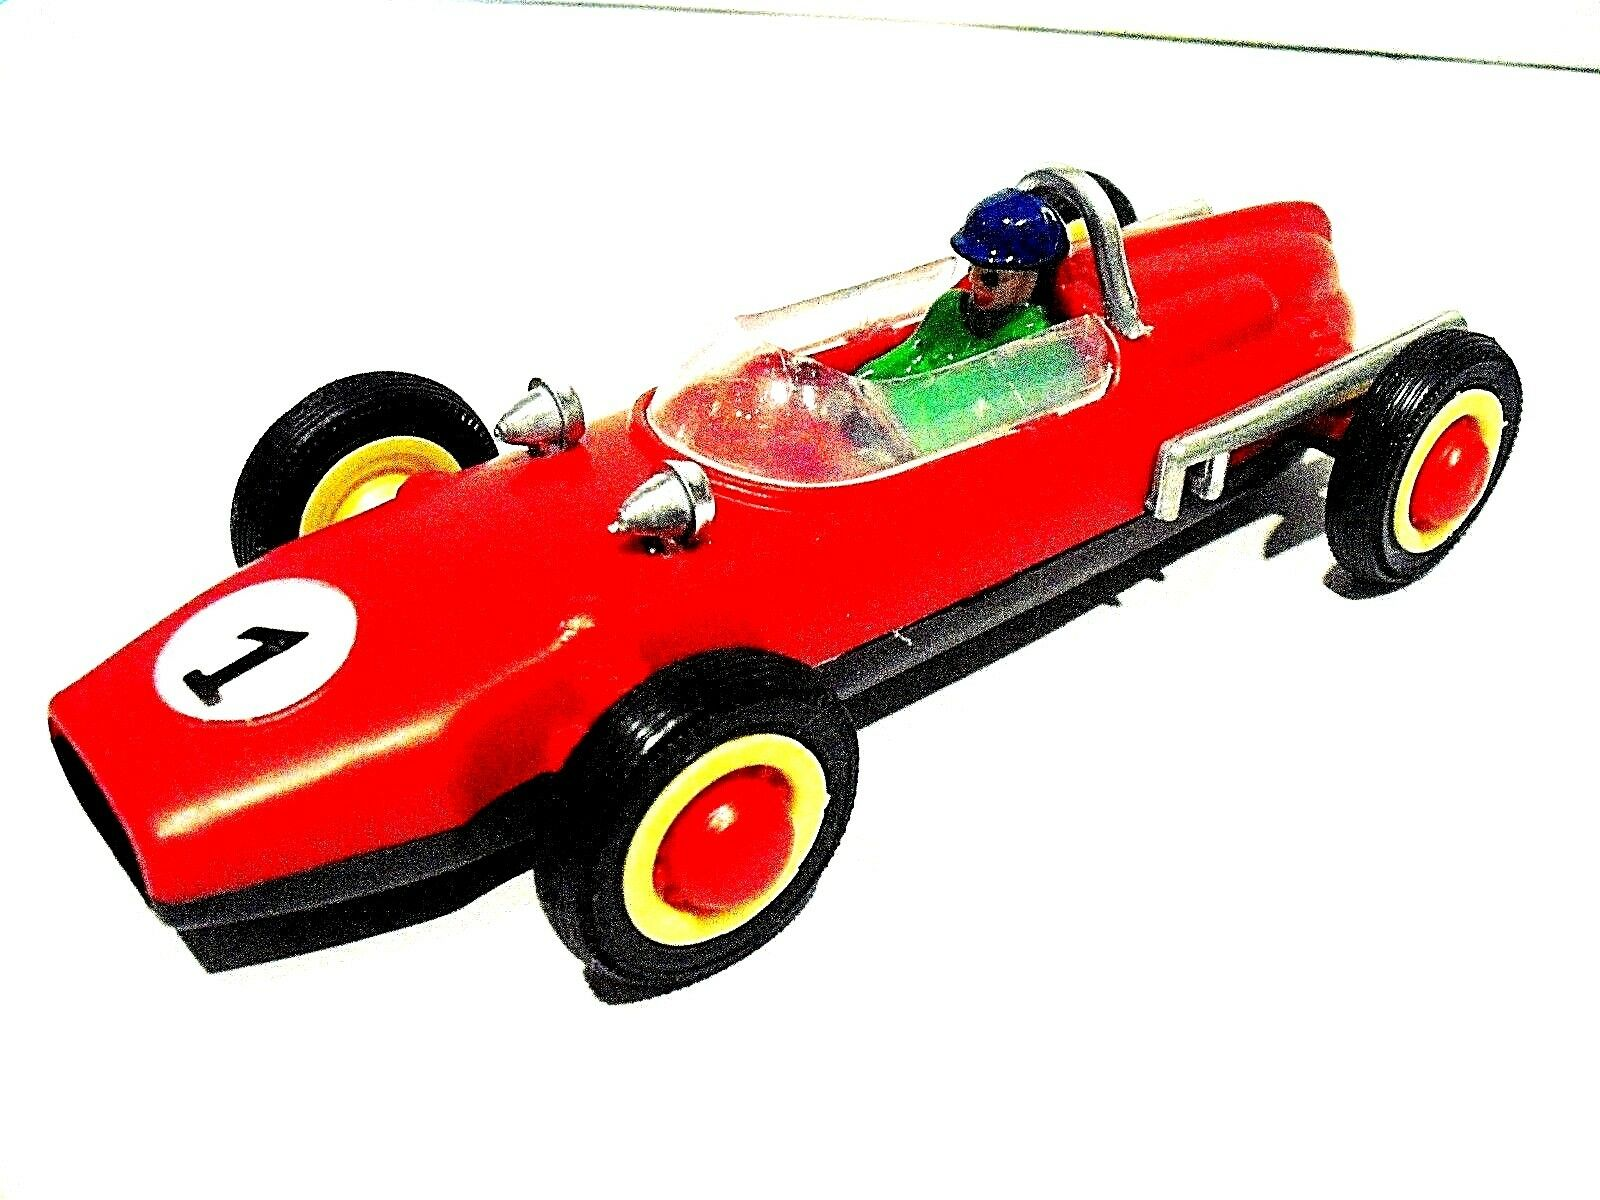 4 Vintage racing car COOPER - made in  PORTUGAL in the 1970's